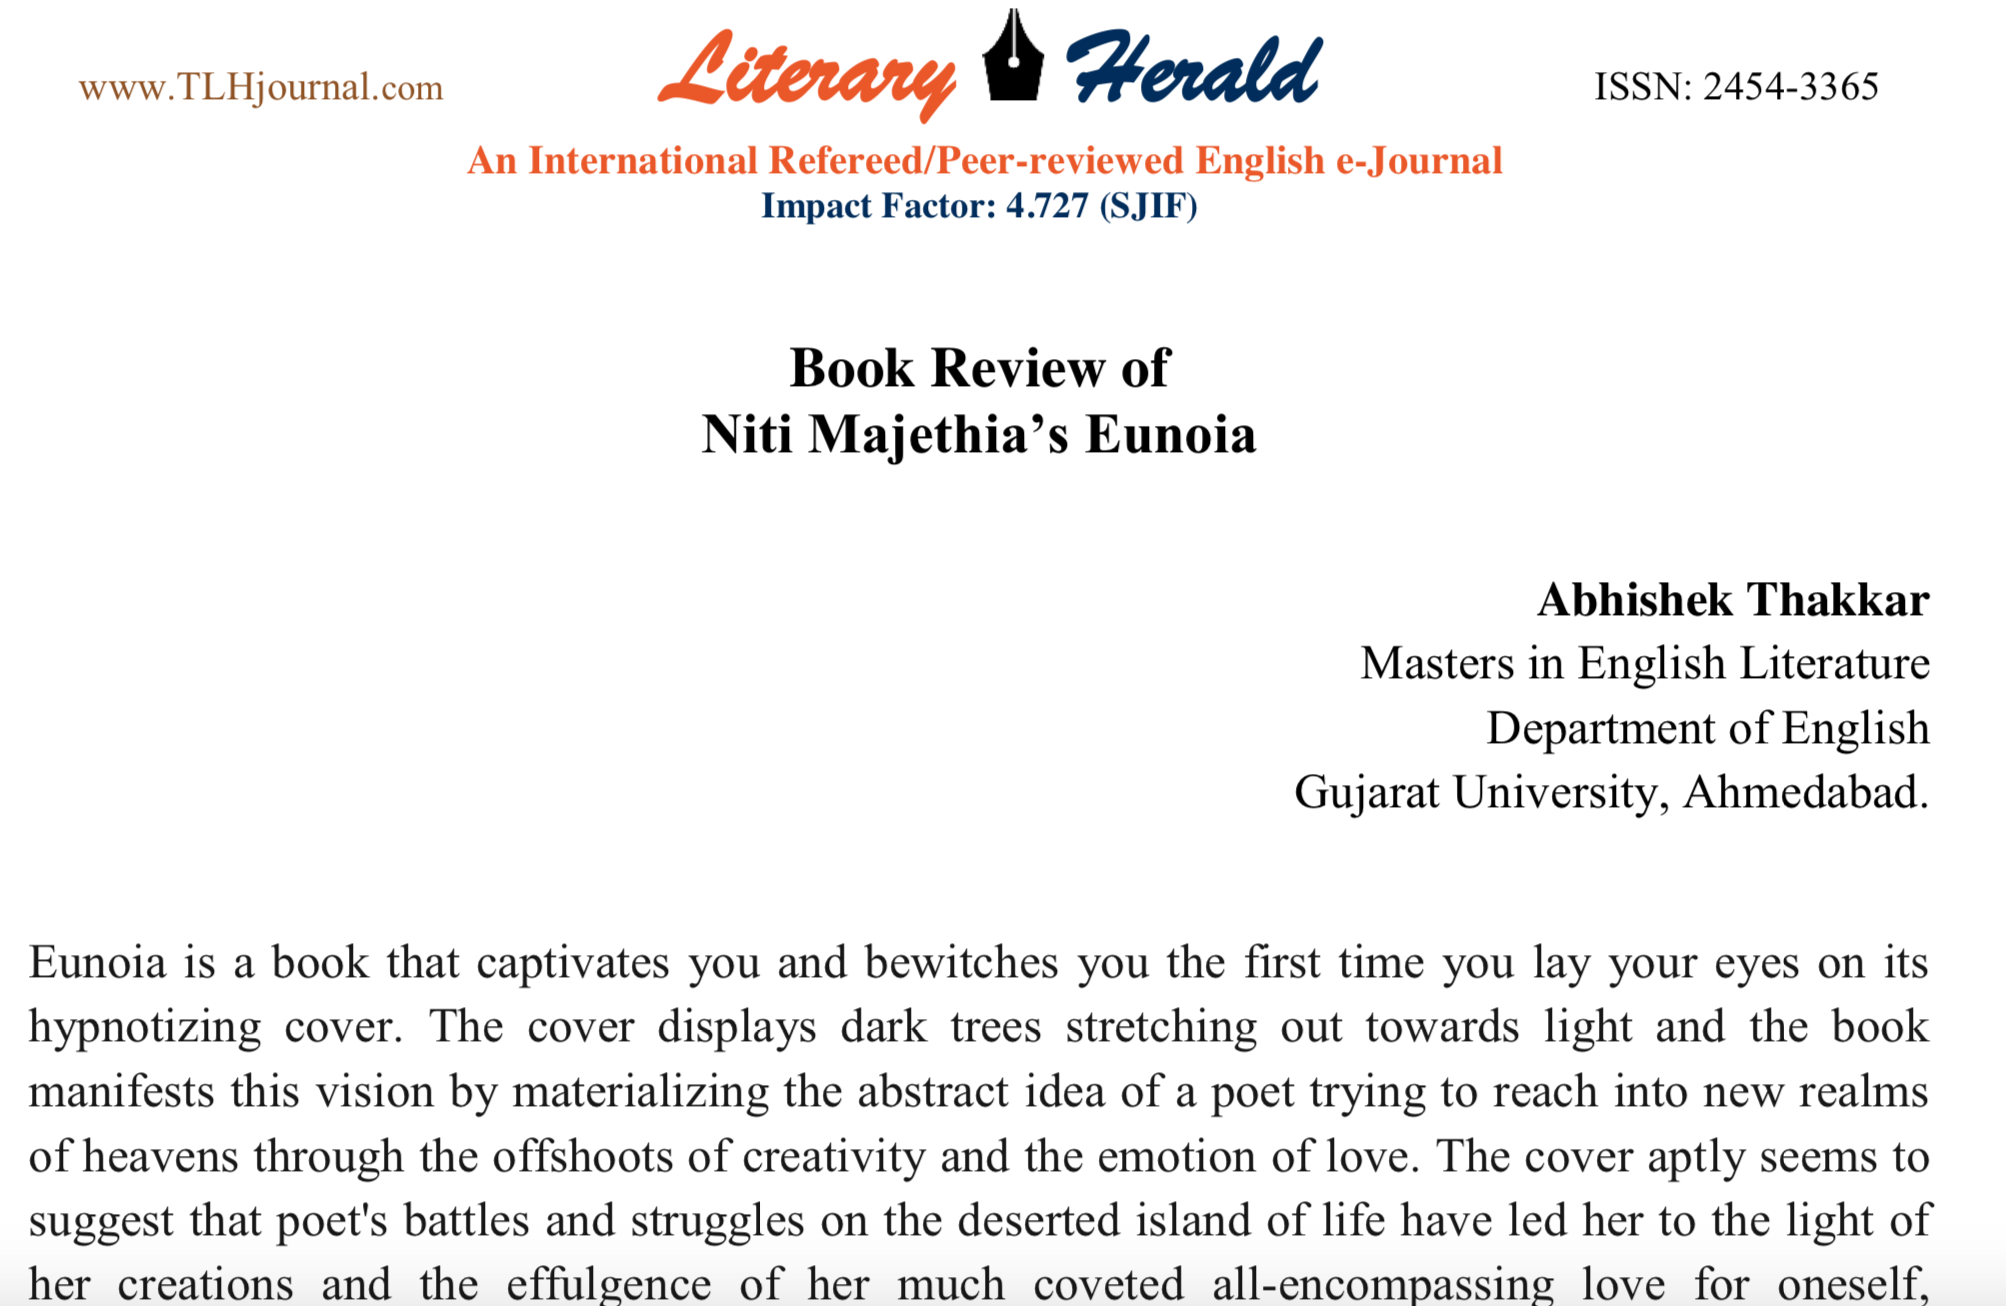 Two page review of Eunoia by a reader published in    The Literary Herald Journal    (2019)